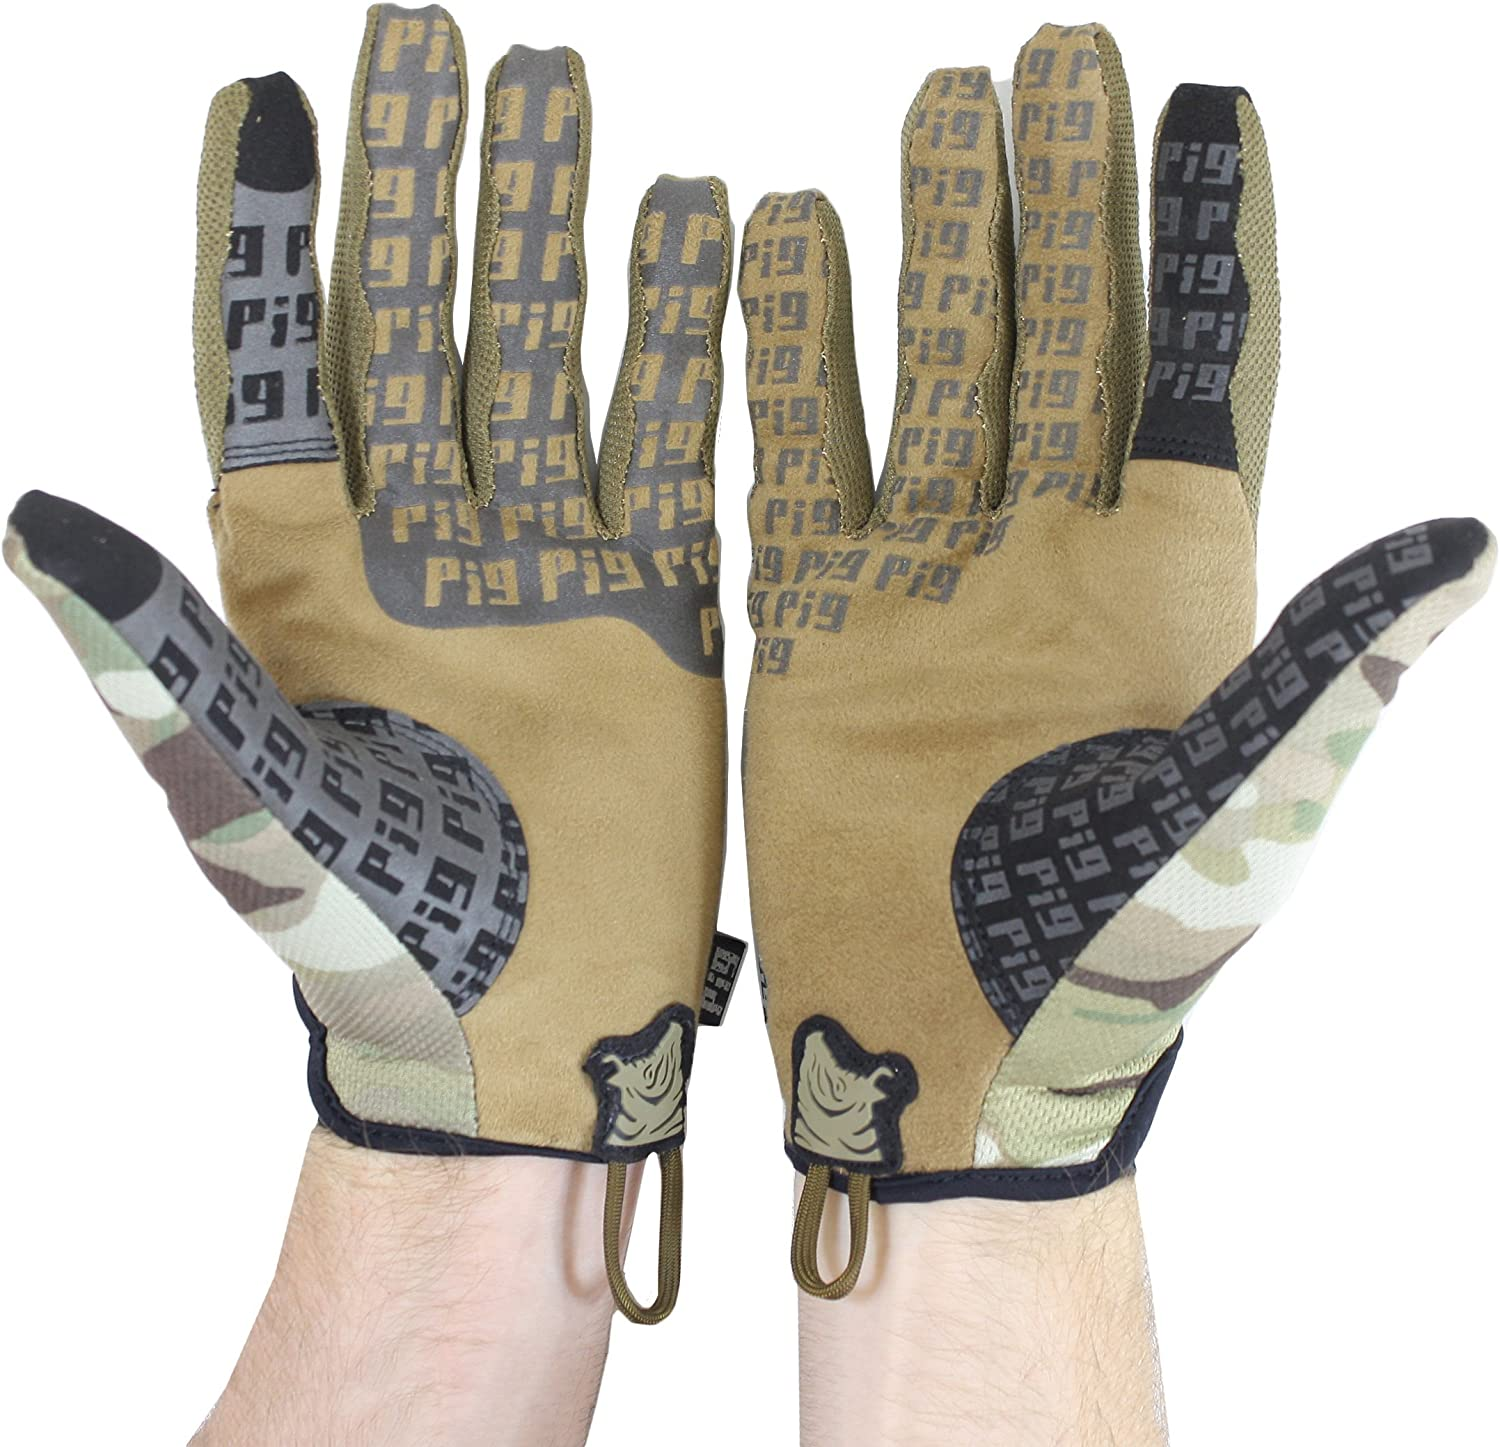 PIG Full Dexterity Tactical Delta Utility Gloves, in coyote brown color and some camouflage on the front part.